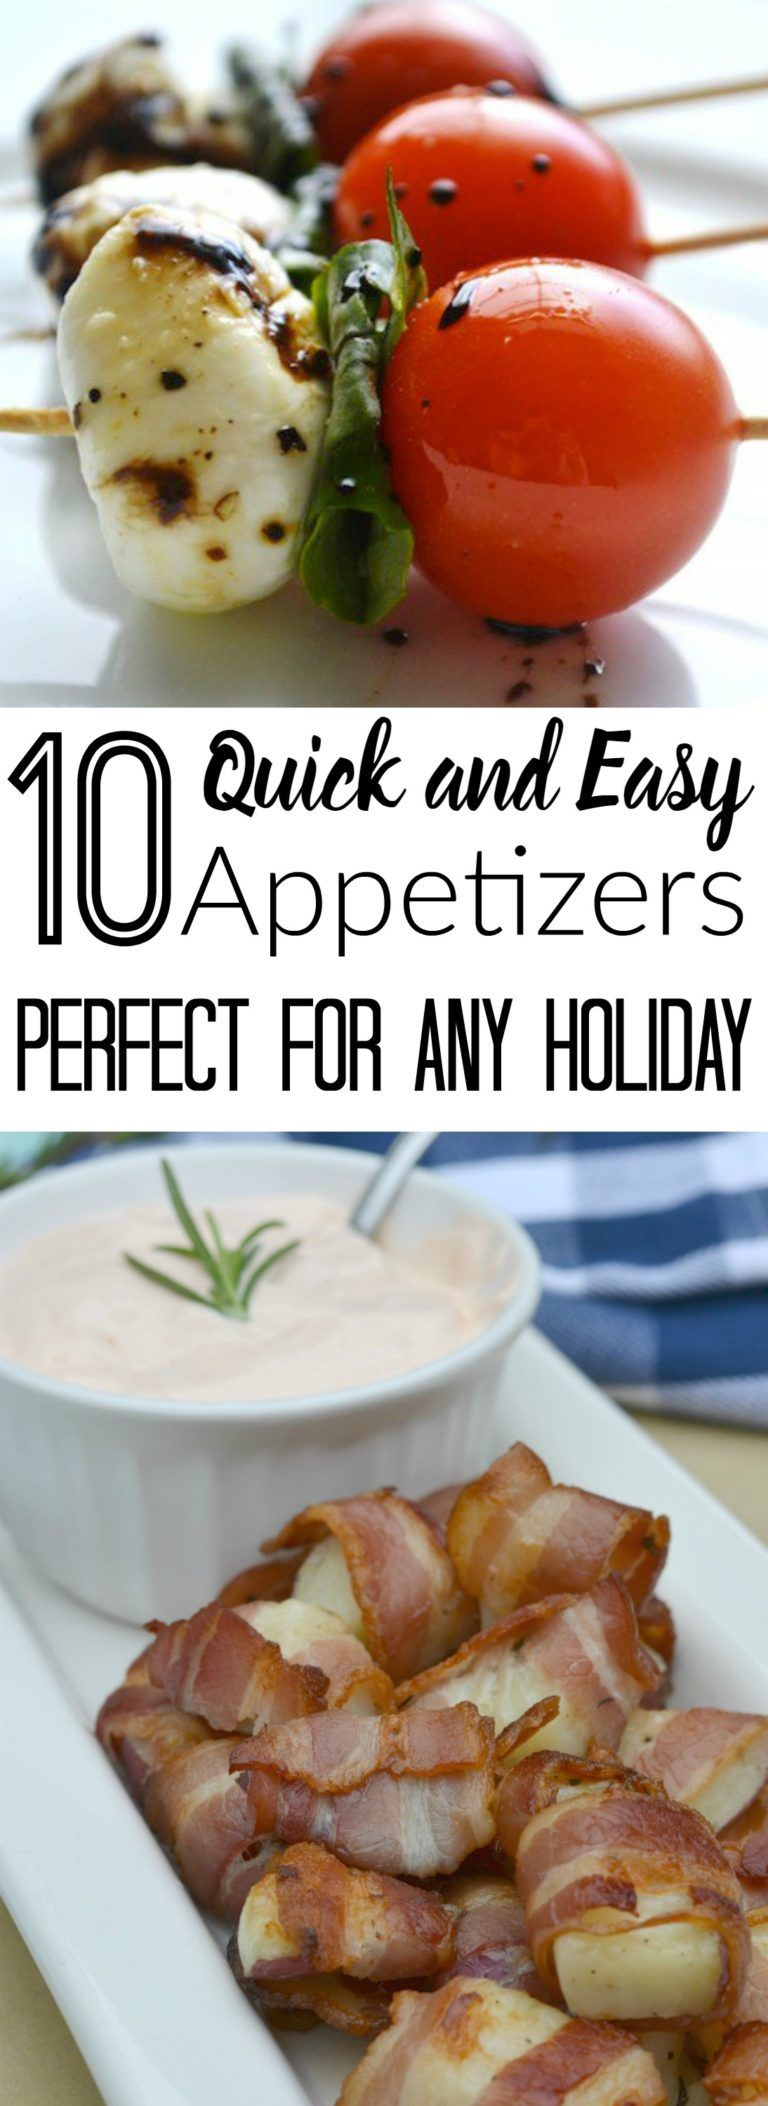 10 Quick and Easy Appetizers Perfect for any Holiday images